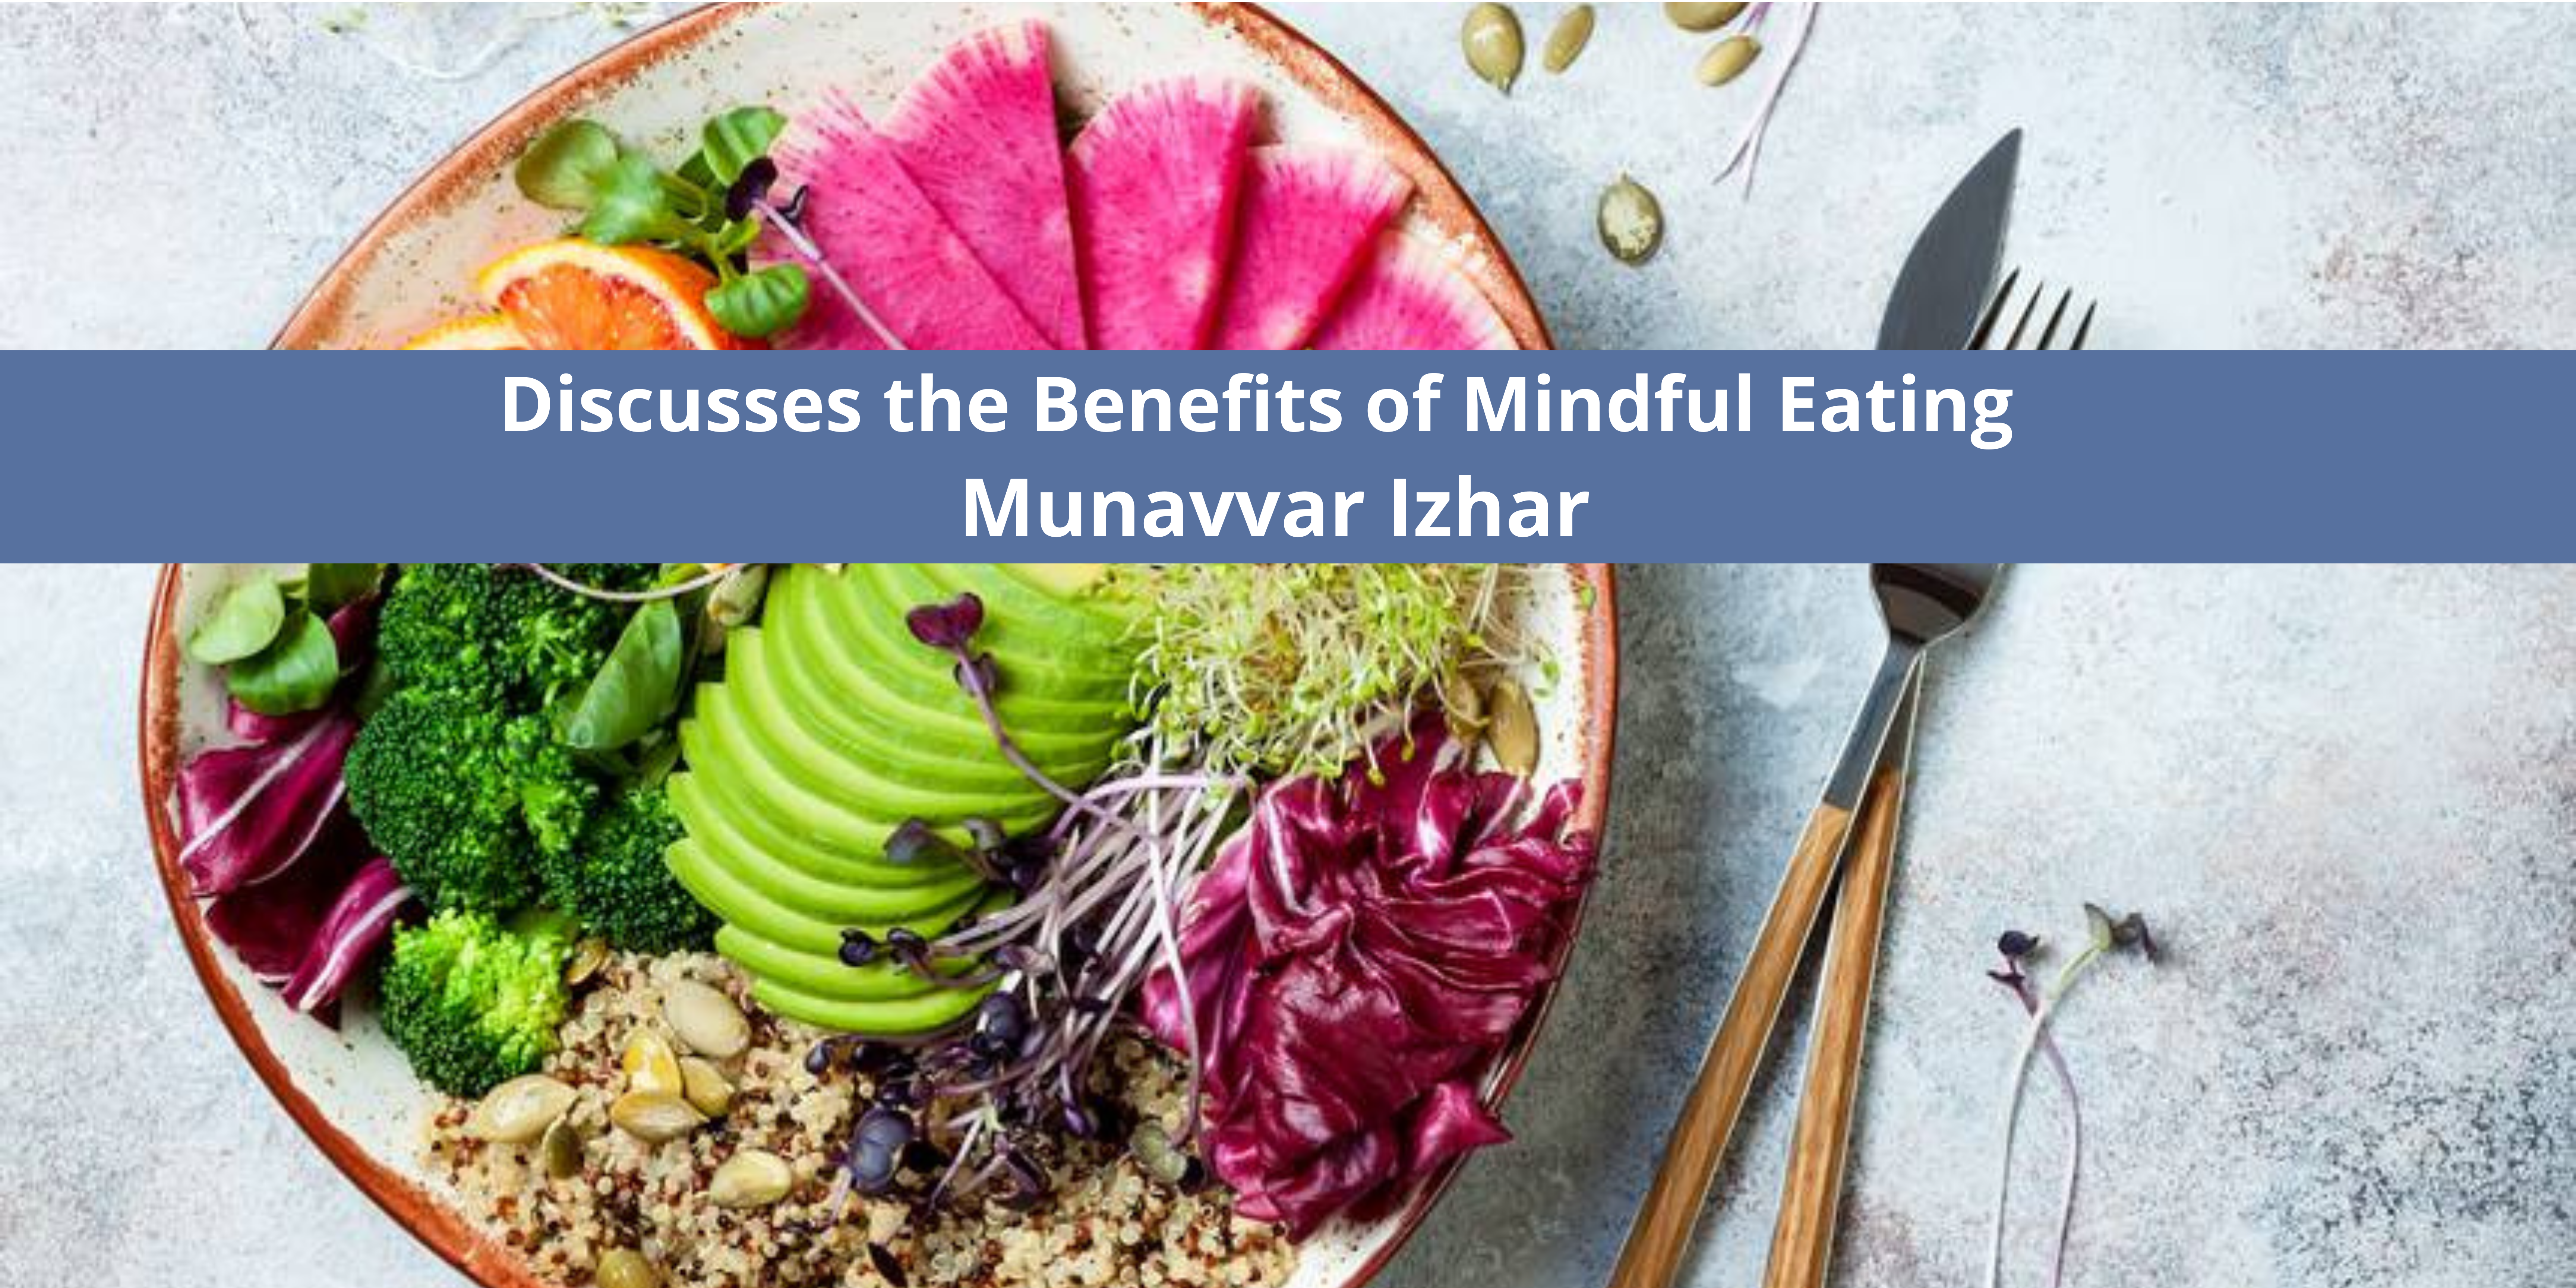 Discusses the Benefits of Mindful Eating